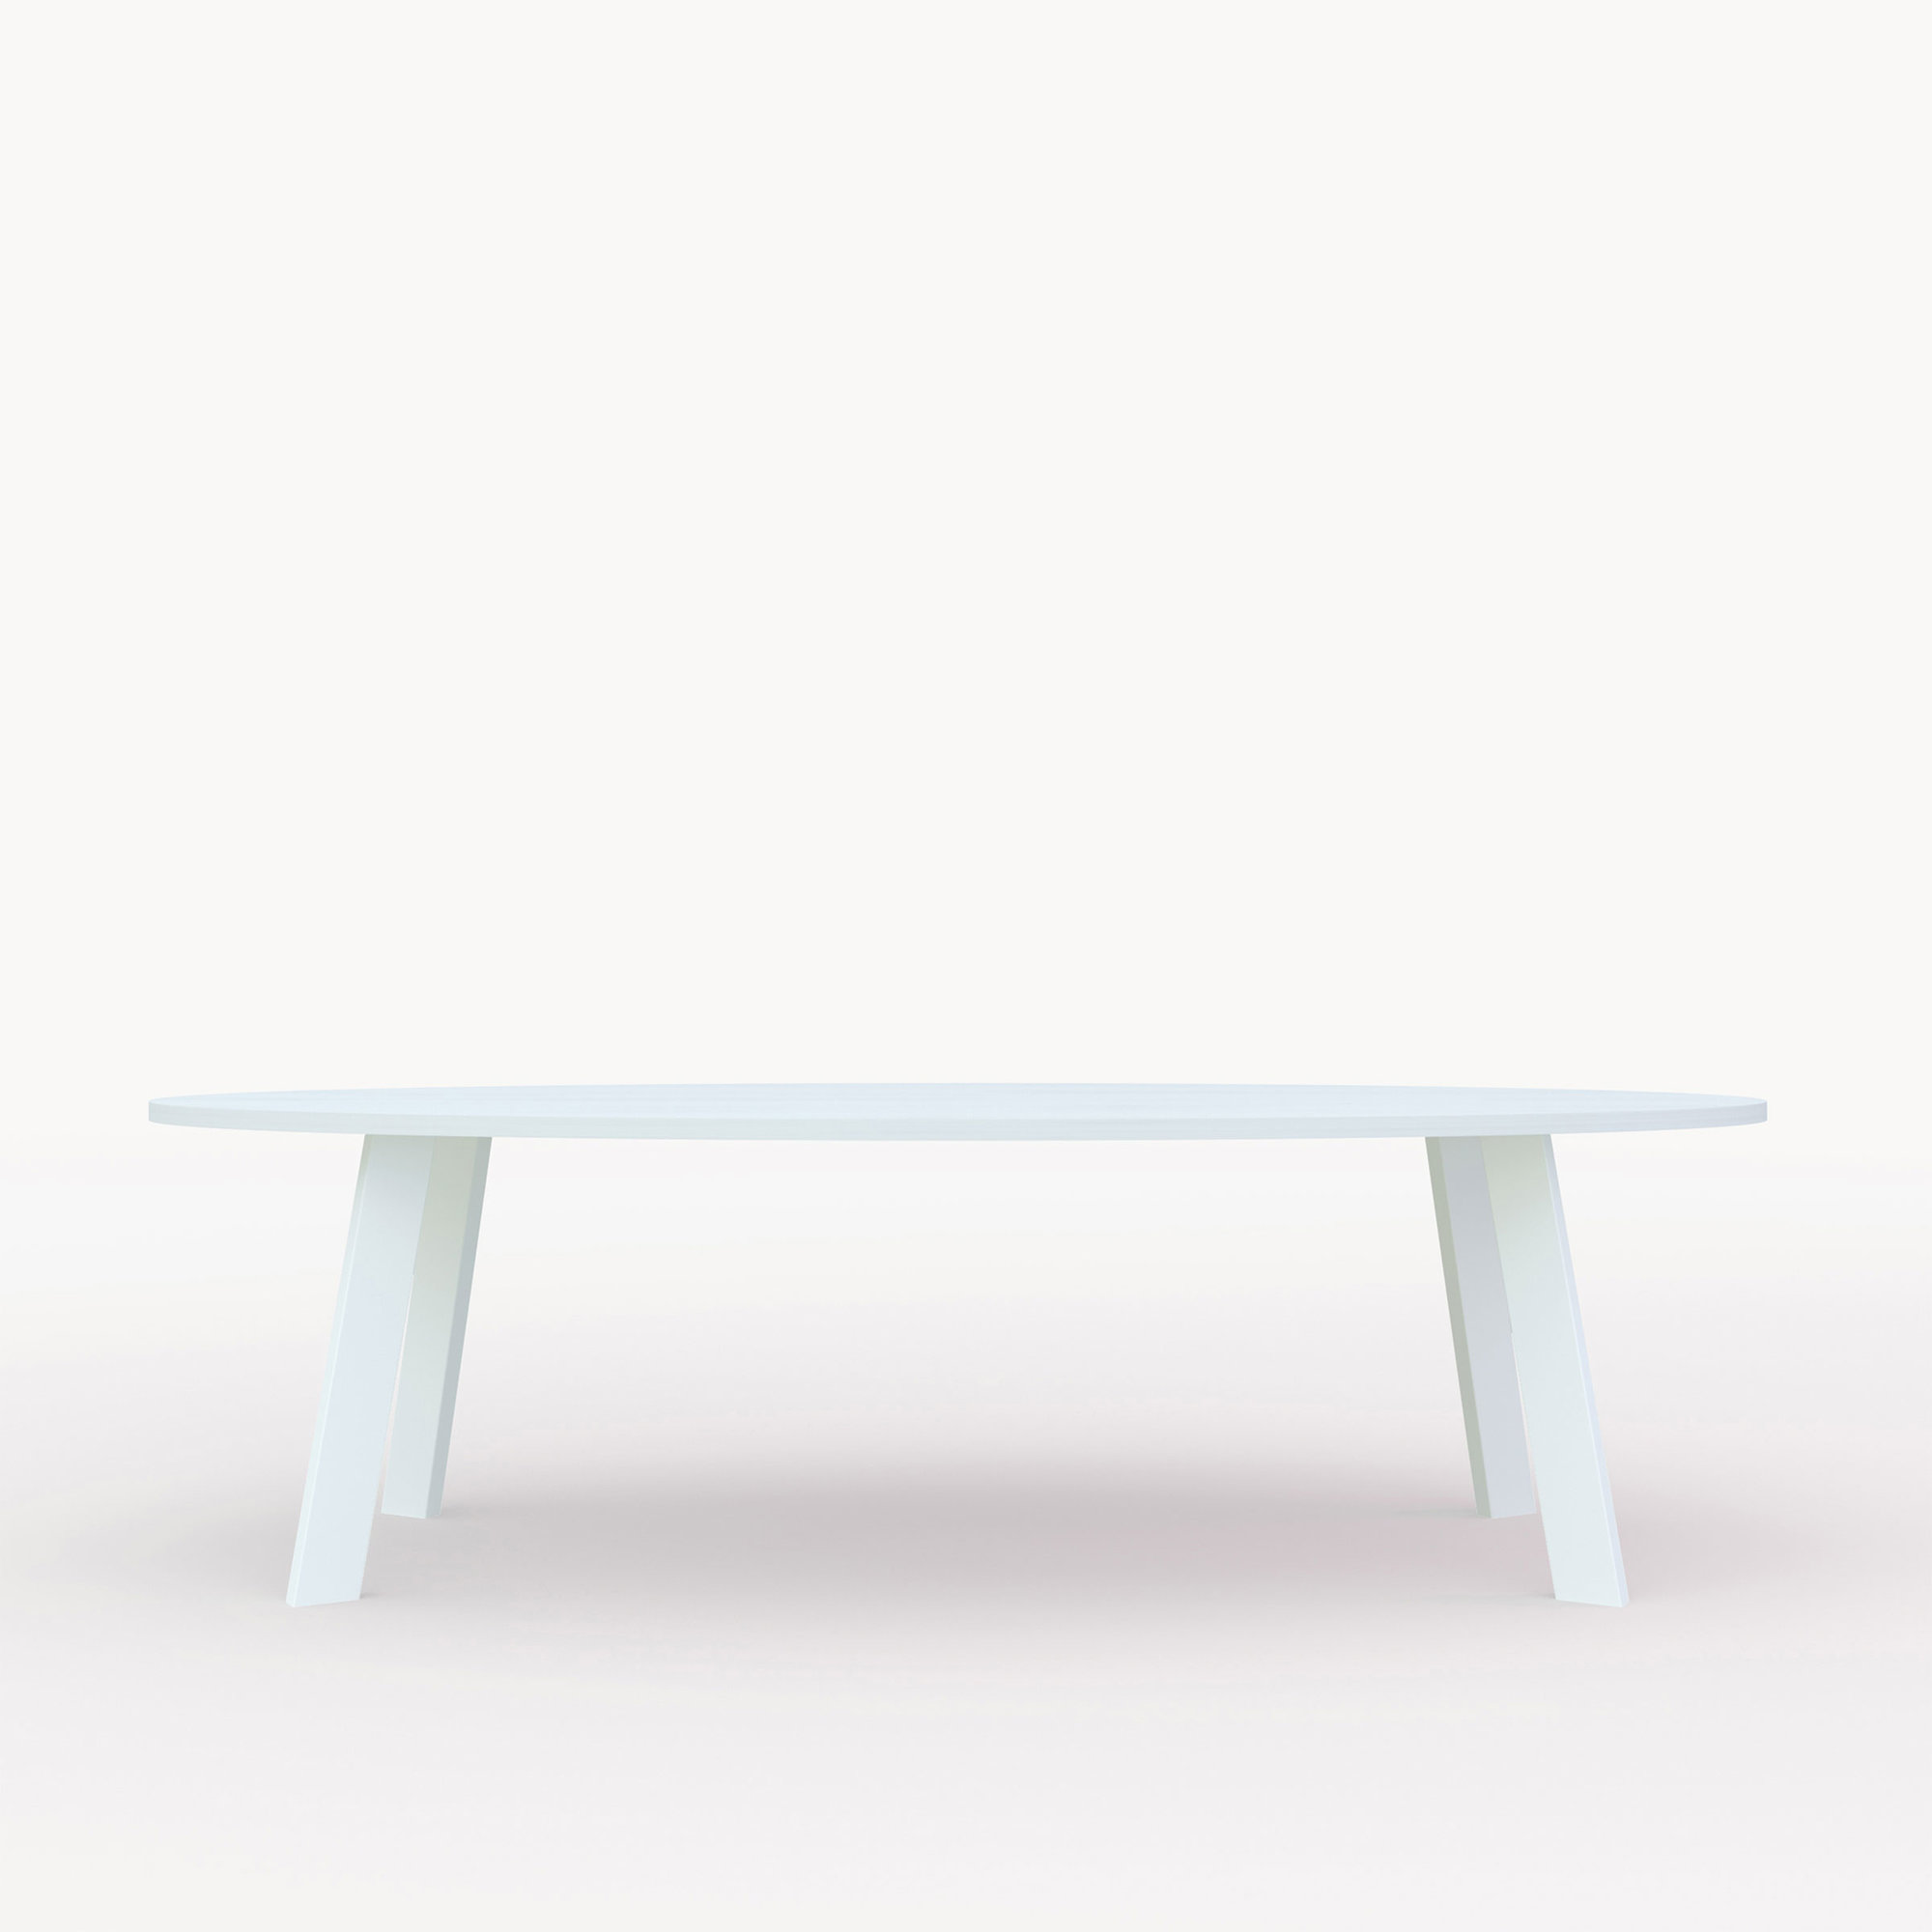 Ovale design tafel op maat | New Co Steel white powdercoating | Oak white lacquer | Studio HENK | Cutout